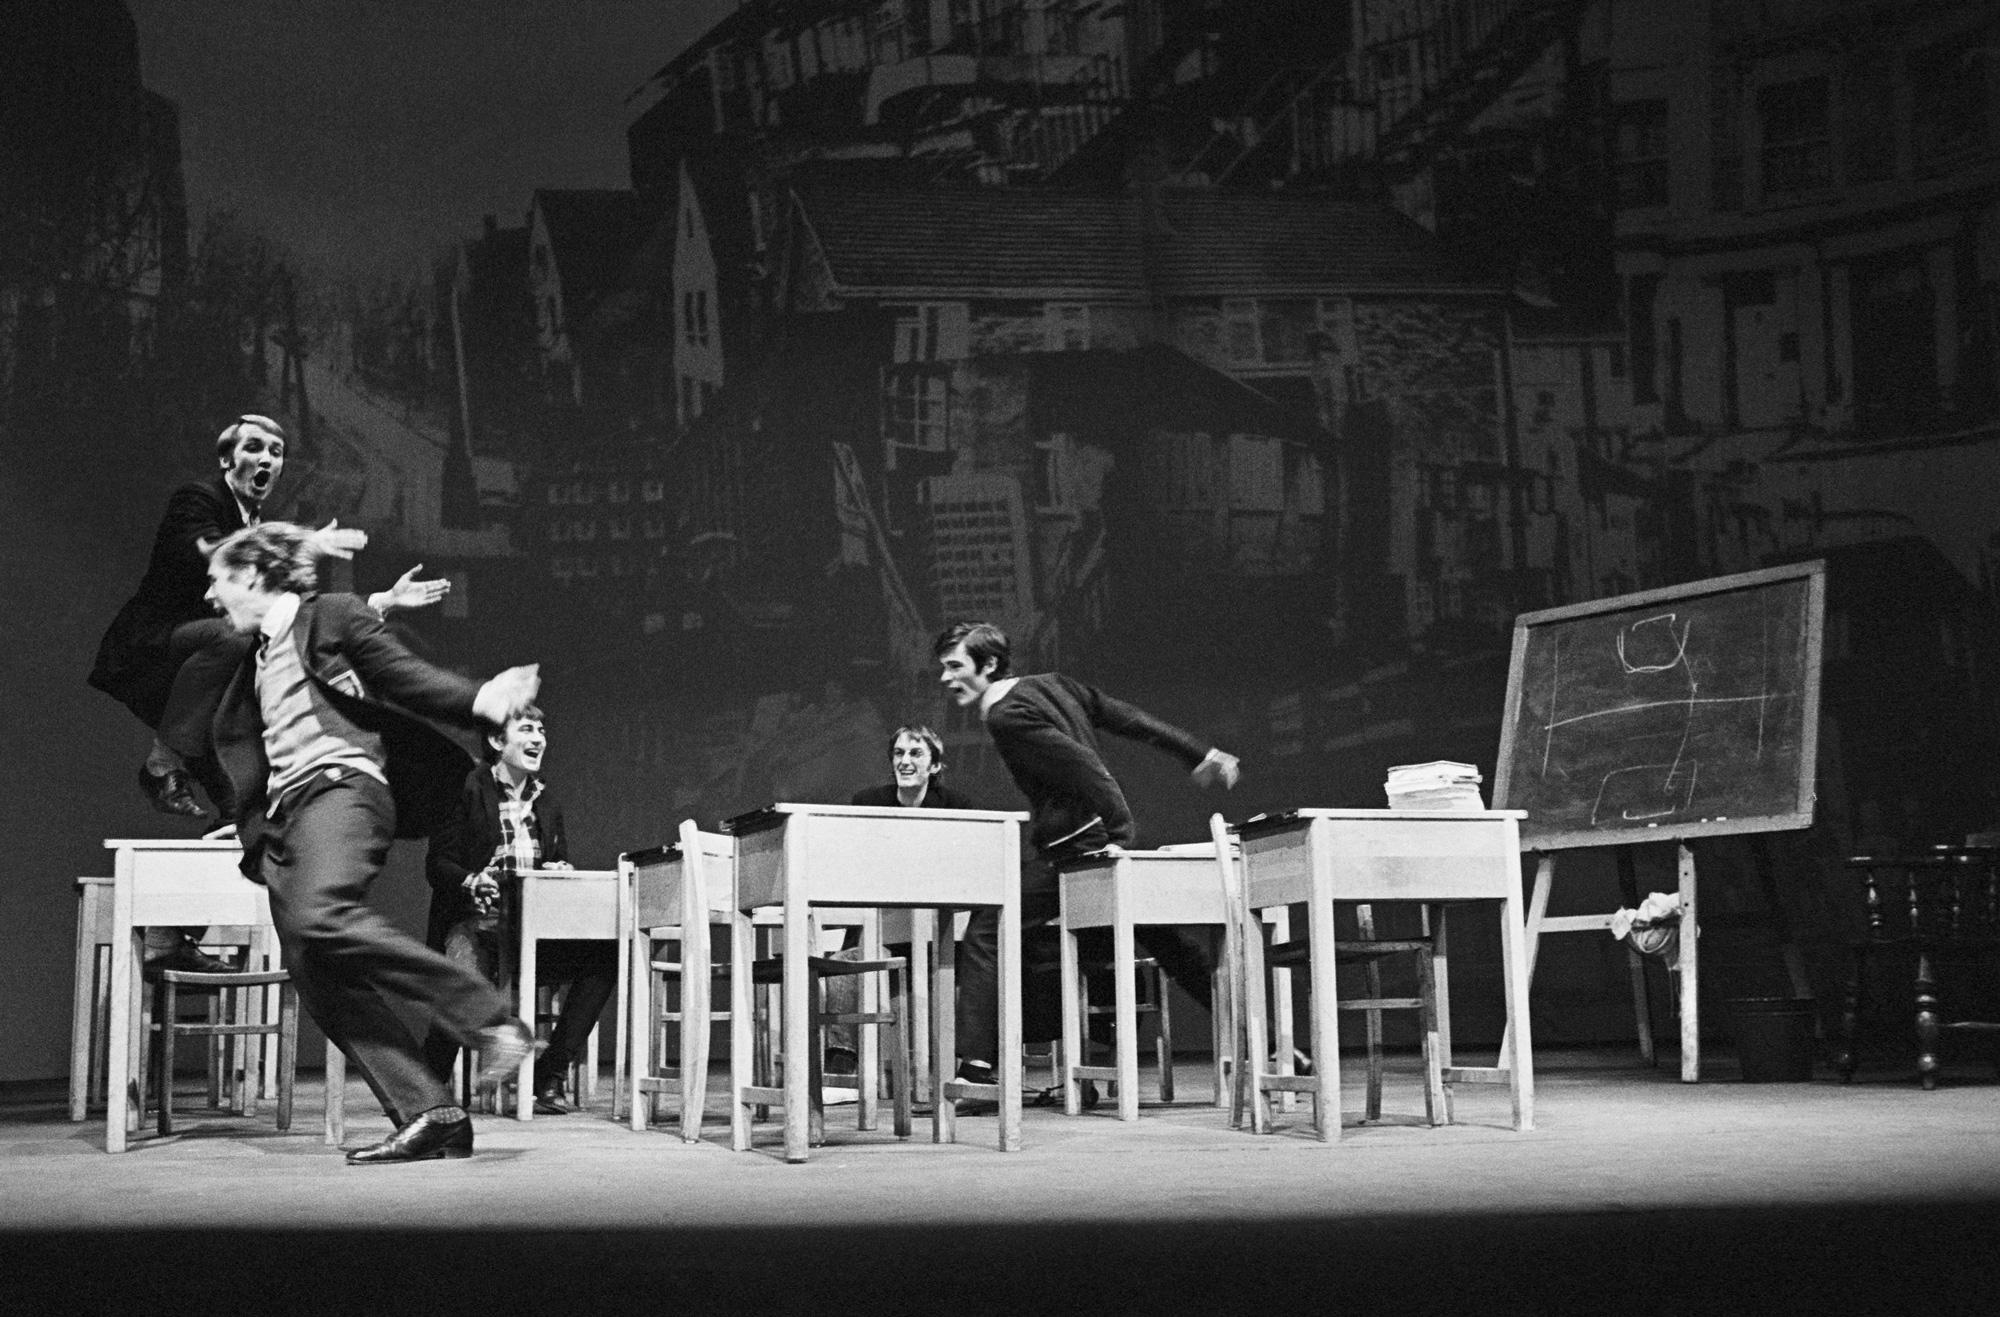 Photograph of Skyvers by Barry Reckord (1968 revival at Nottingham Playhouse)